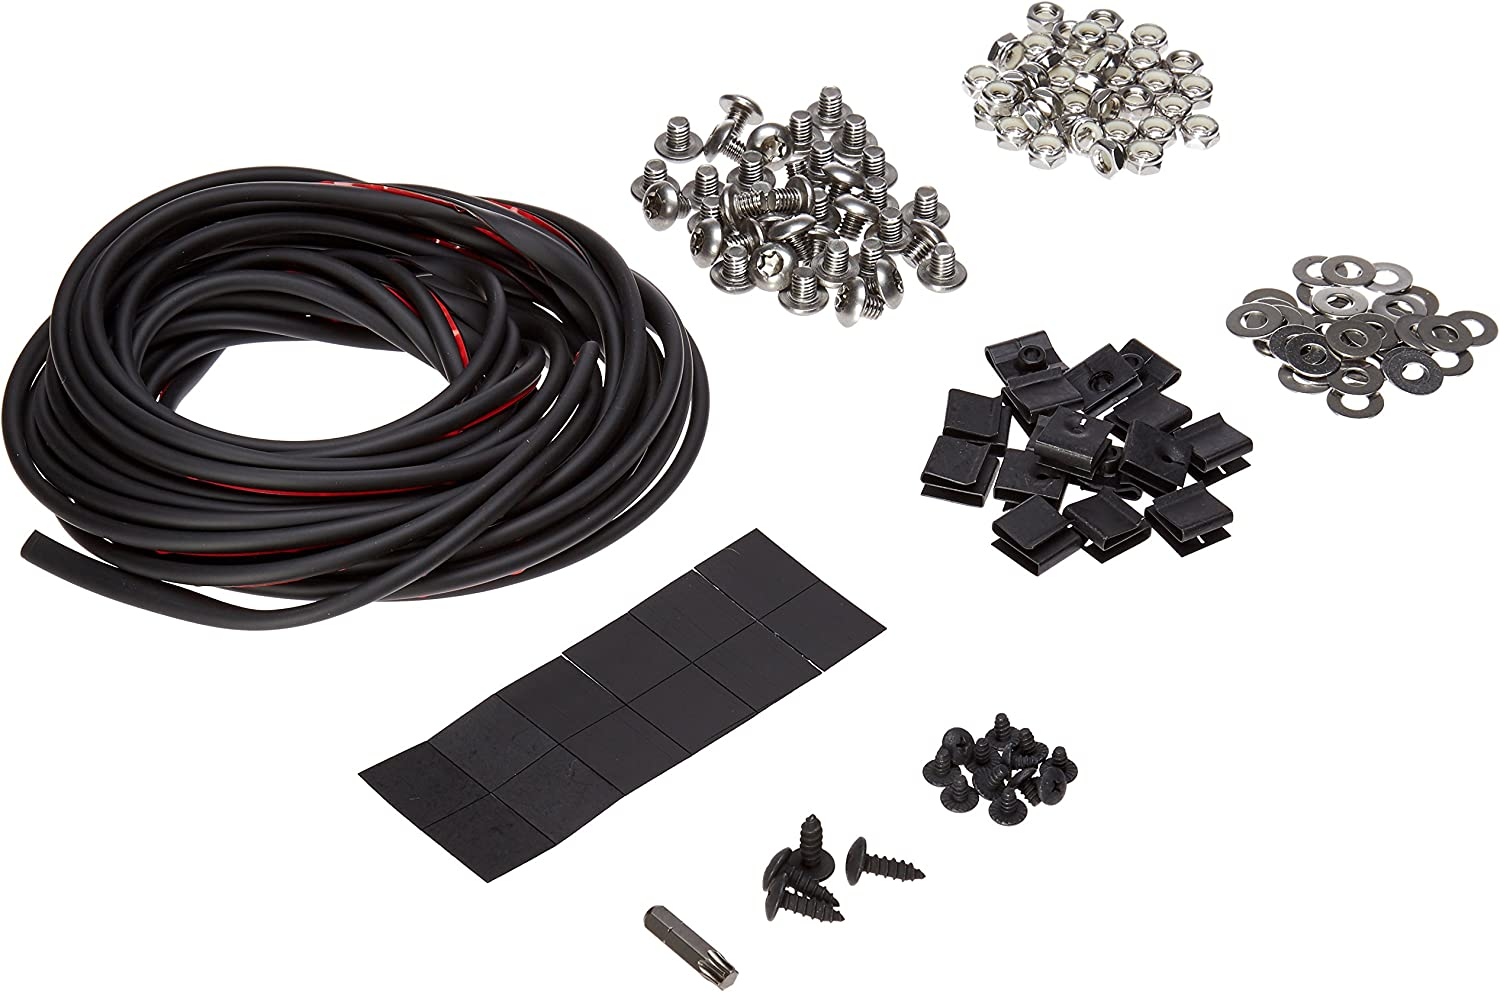 Bushwacker PK1-20503 Complete Hardware Kit for 20503-02